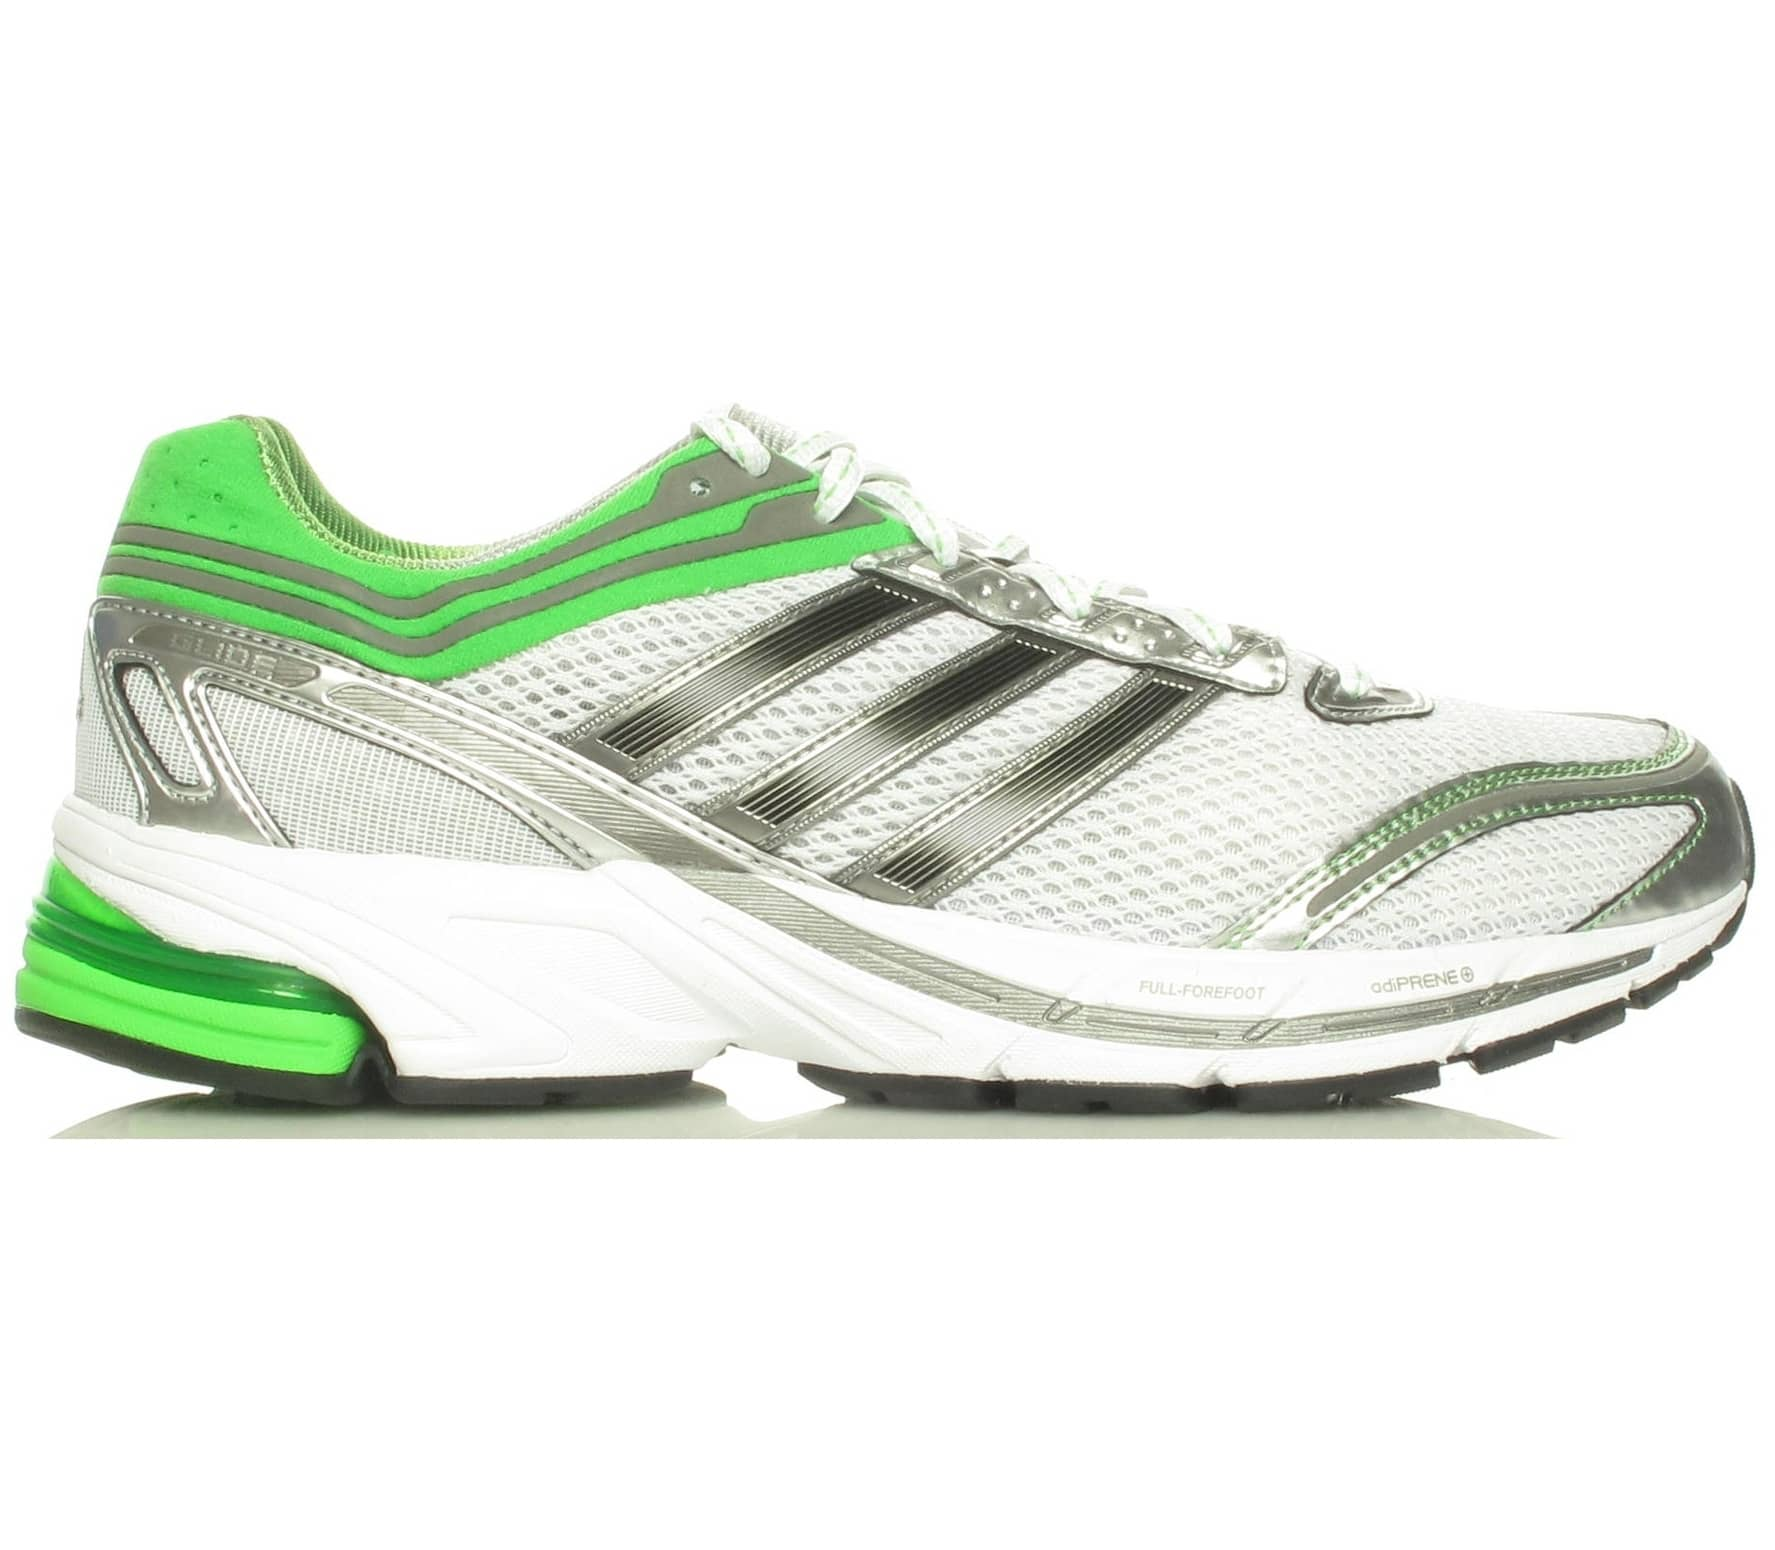 14f65f455 Adidas SNova Glide 3 M white green Running Shoes - buy it at the ...